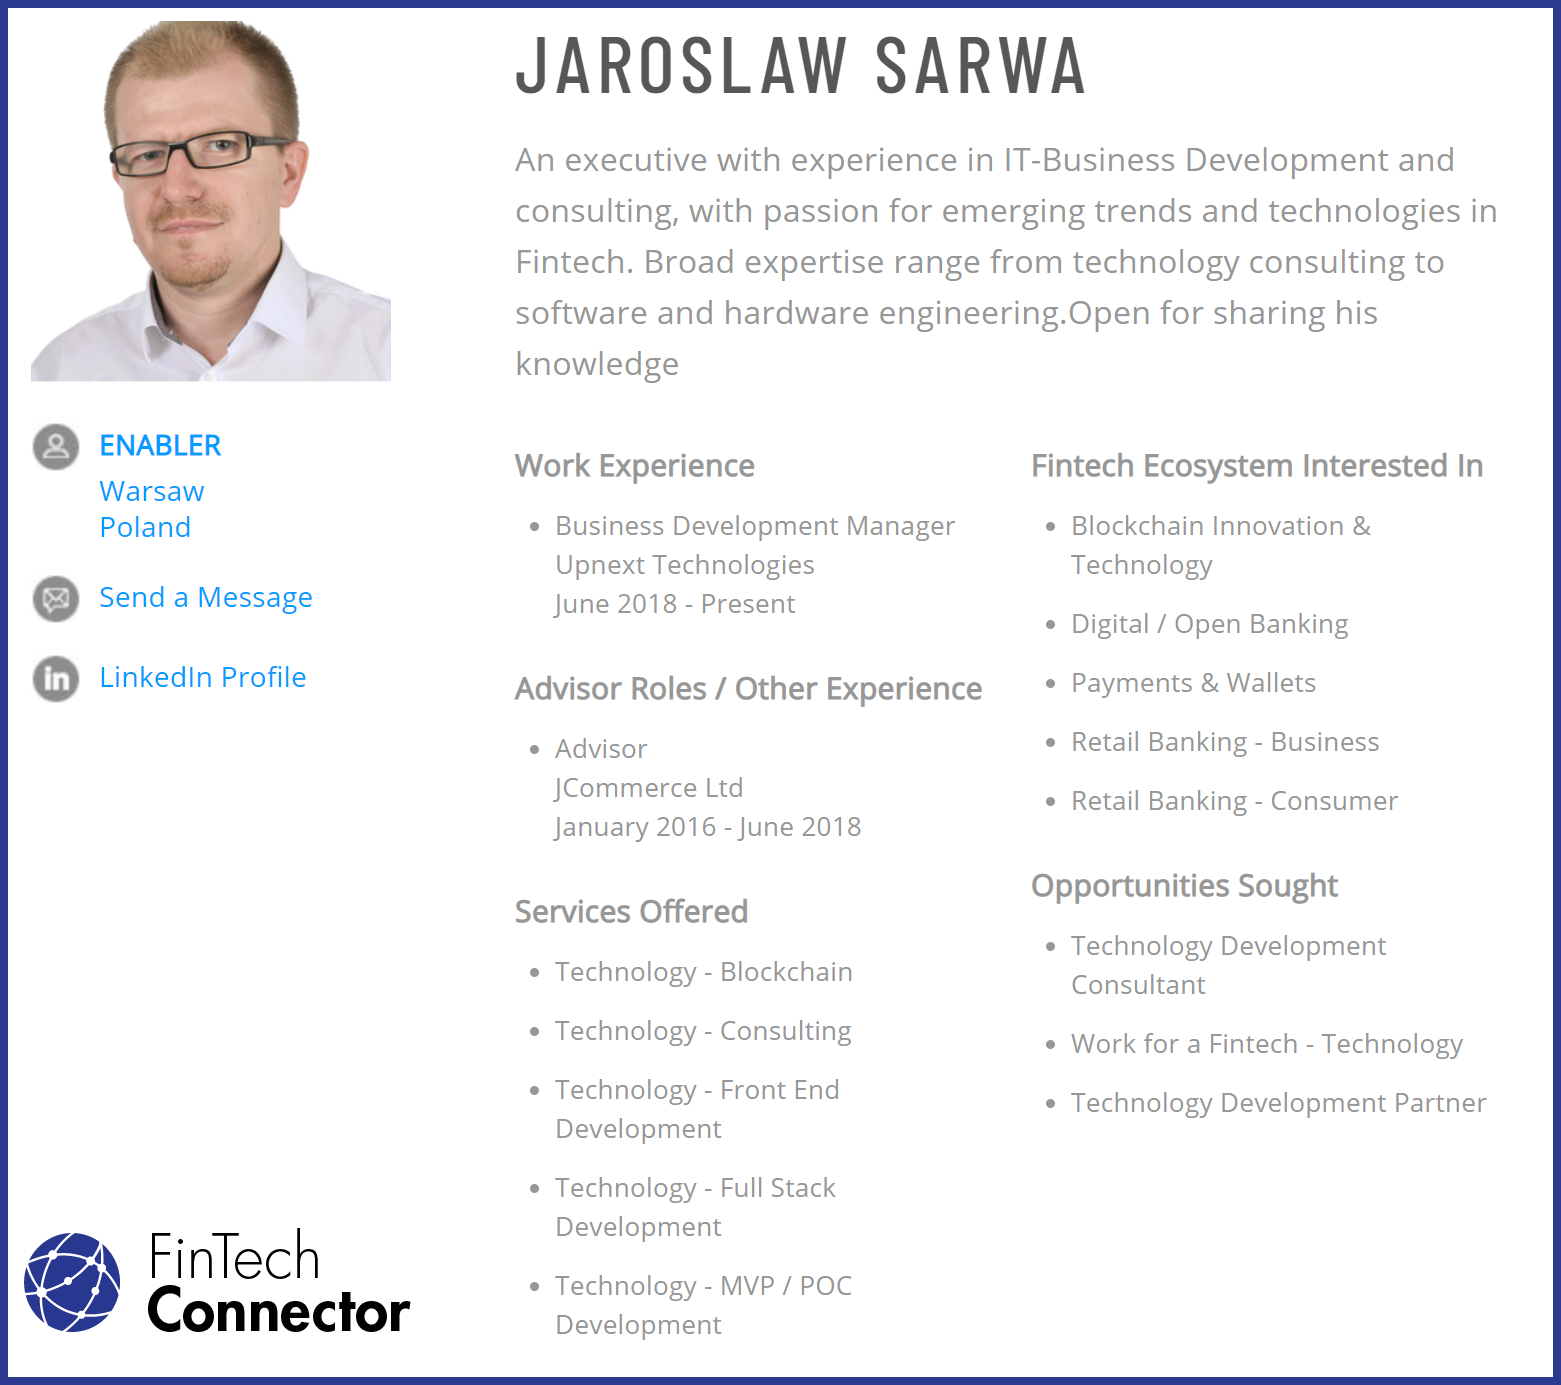 Connect with Jaroslaw Sarwa via FinTech Connector